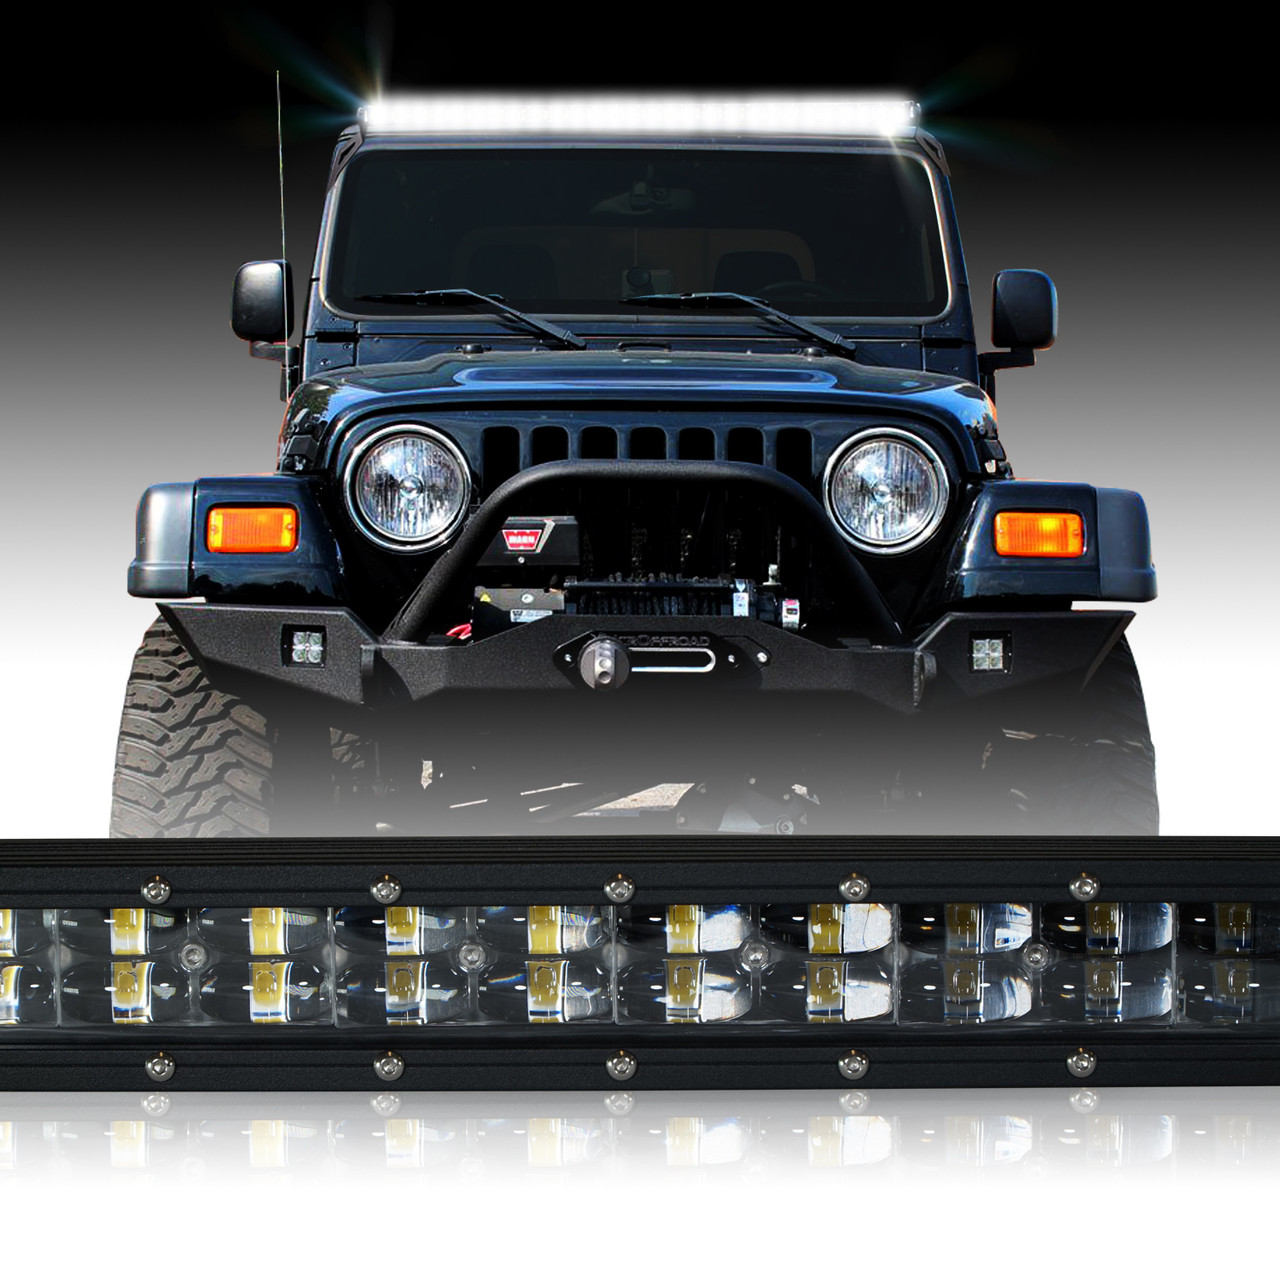 led light bar 288w 50 inches bracket wiring harness kit for wrangler tj 1997 2006 [ 1280 x 1280 Pixel ]